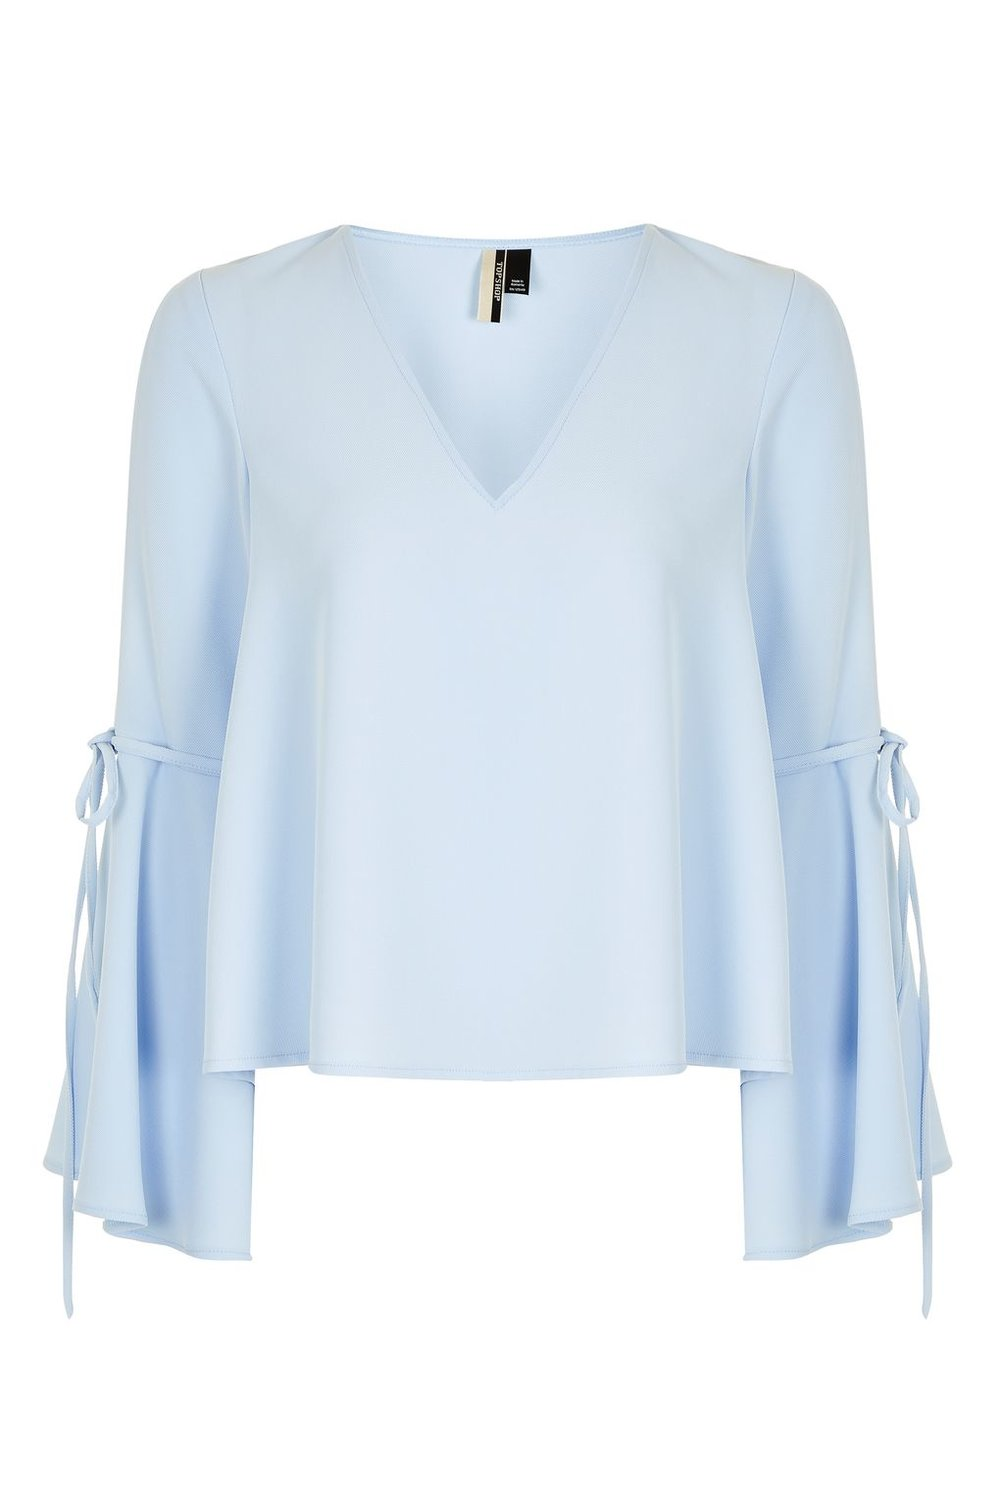 TOP SHOP 'TRUMPET SLEEVE' BLOUSE